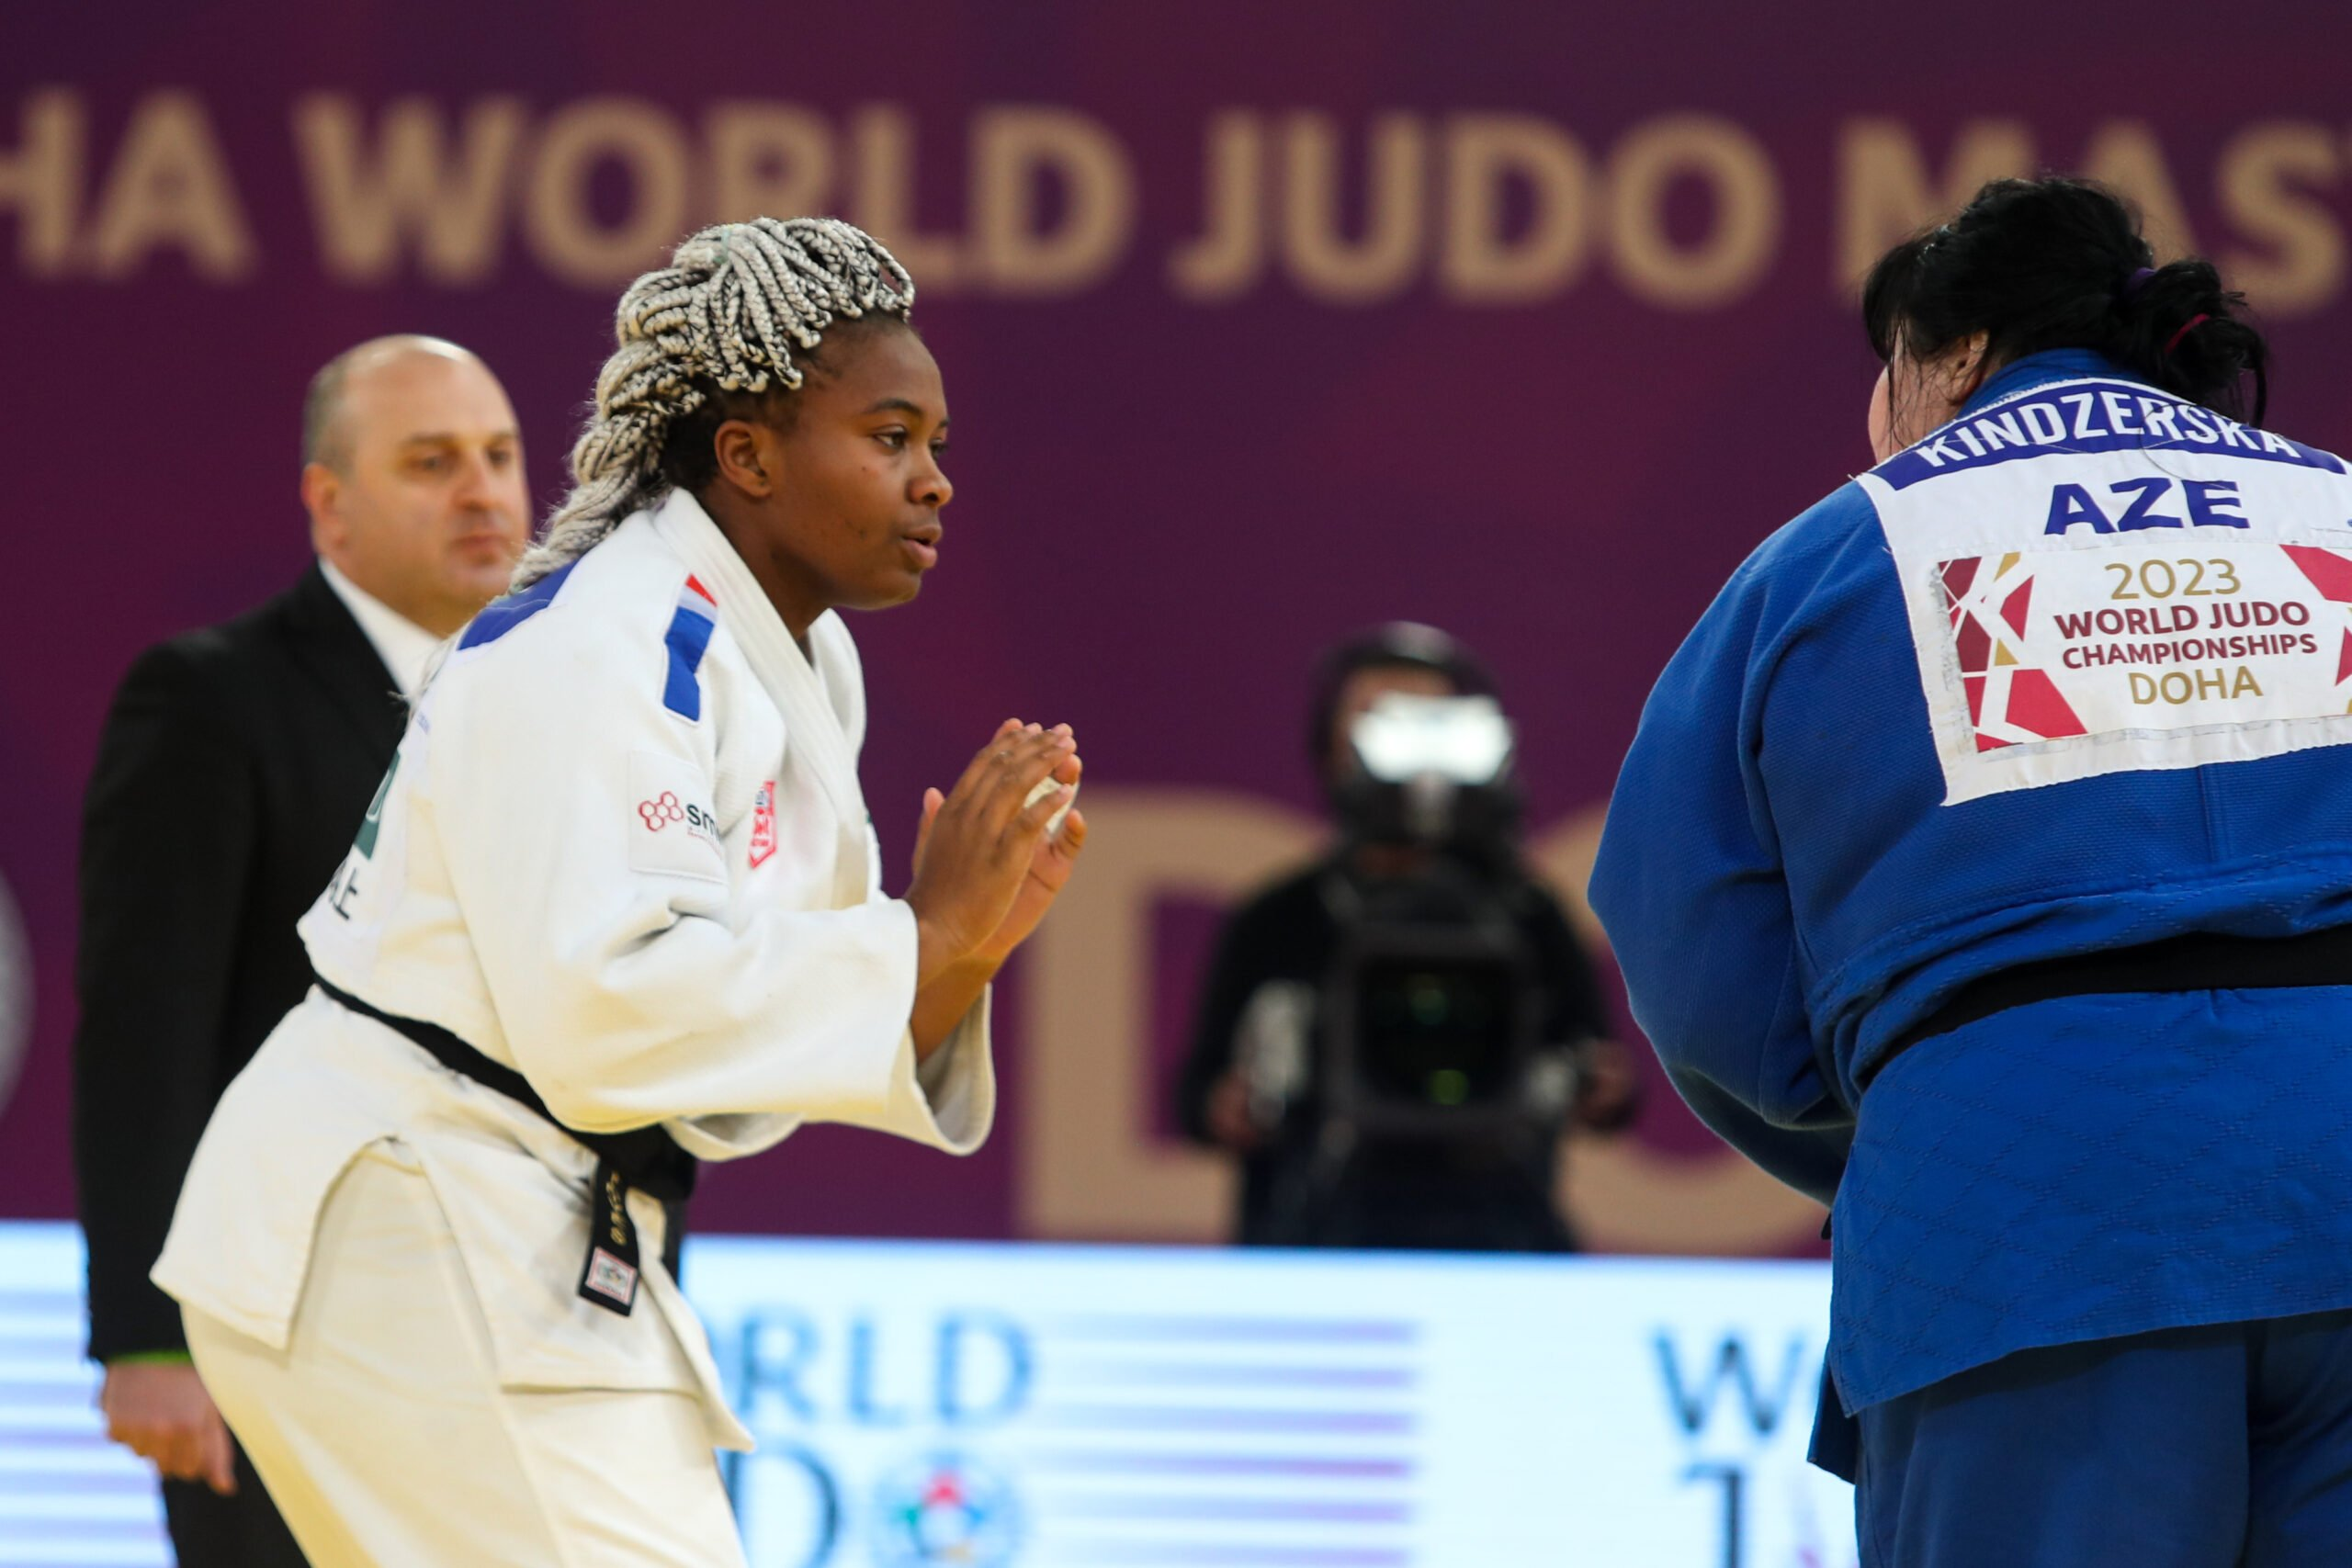 SUPER-HEAVYWEIGHTS TAKE CENTRE STAGE IN TBILISI